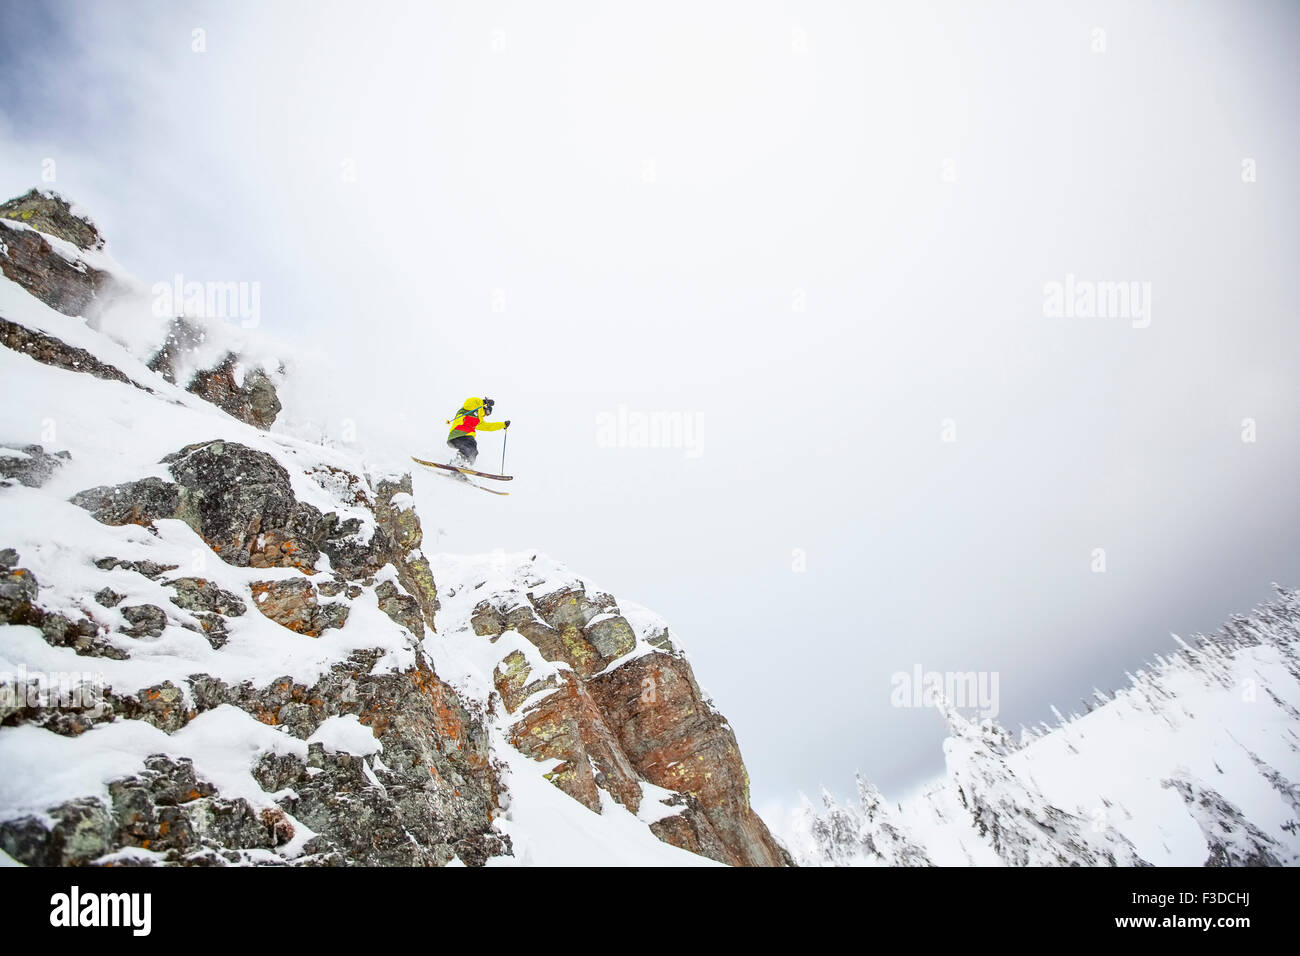 Skier Jumping off rocky mountain Photo Stock